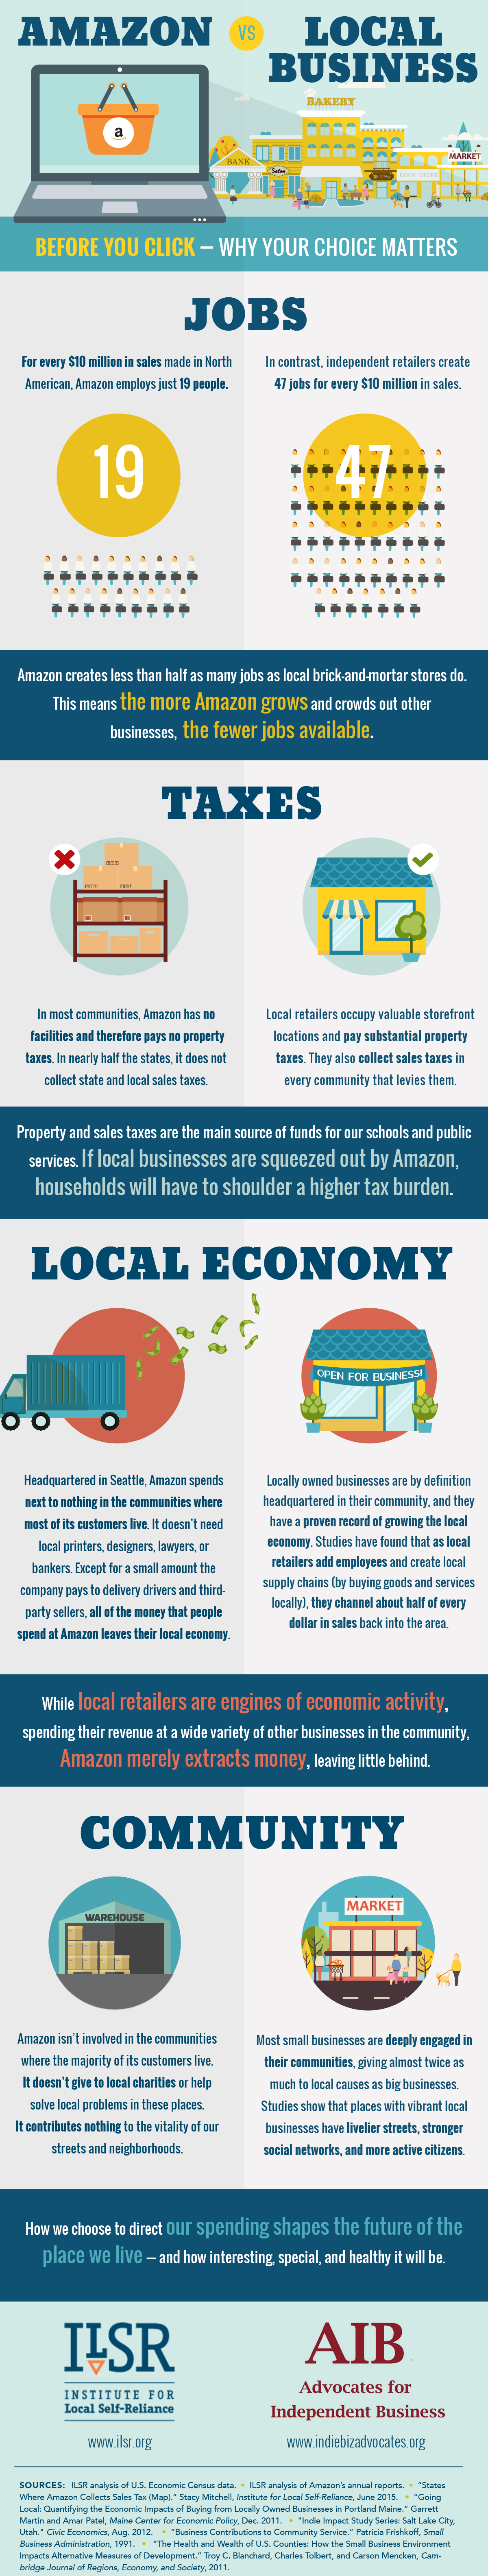 Infographic: Amazon vs. Local Business